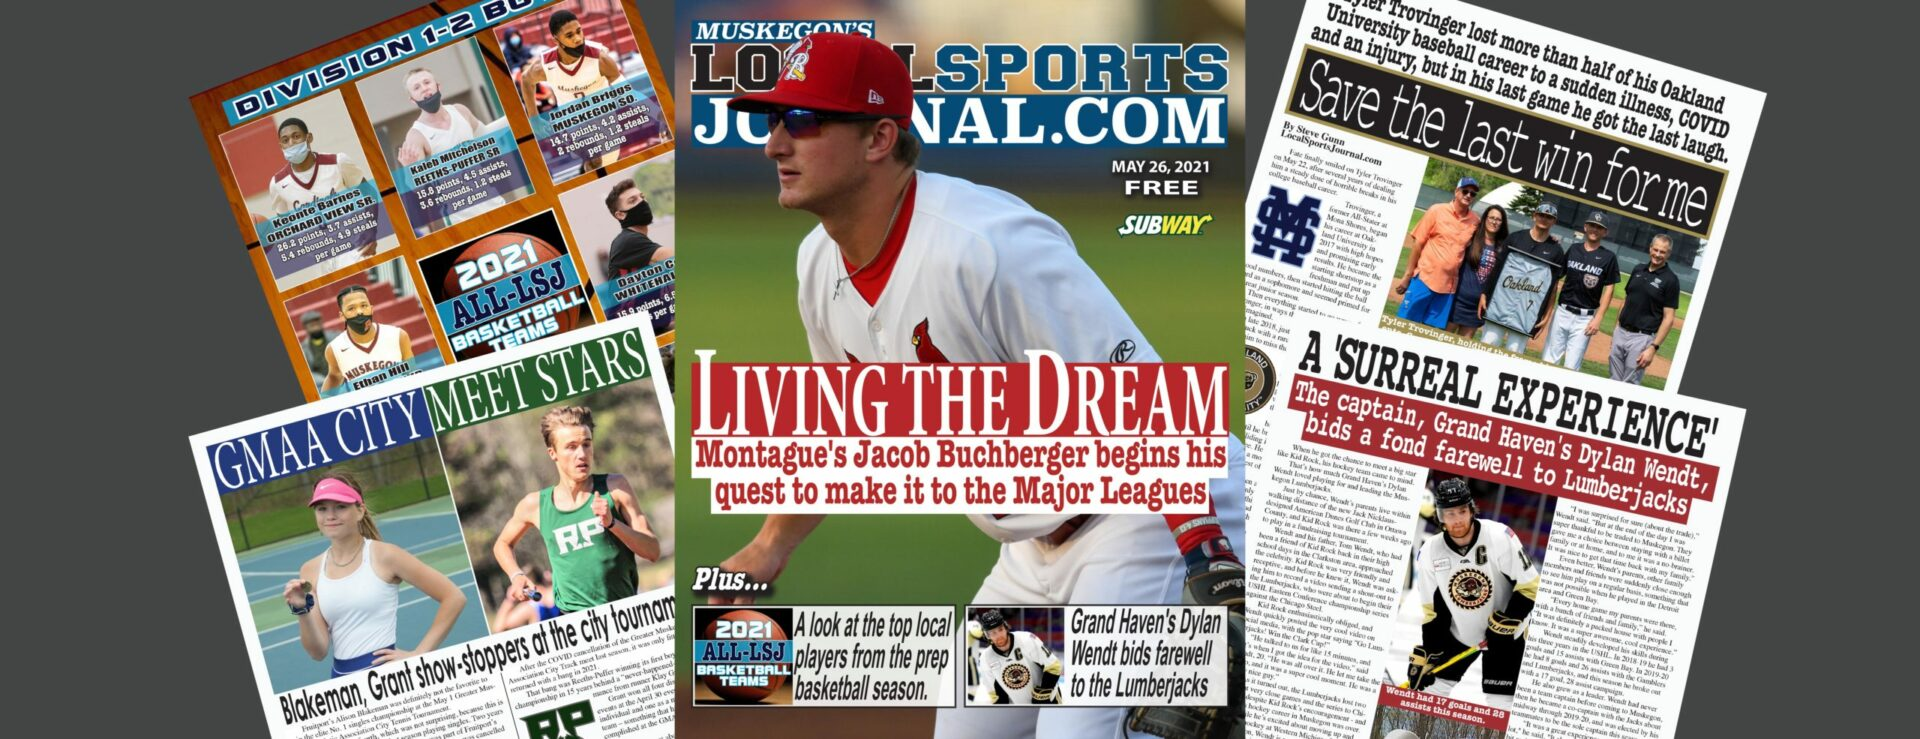 Read about Jacob Buchberger's budding pro baseball career in the most recent LSJ magazine!